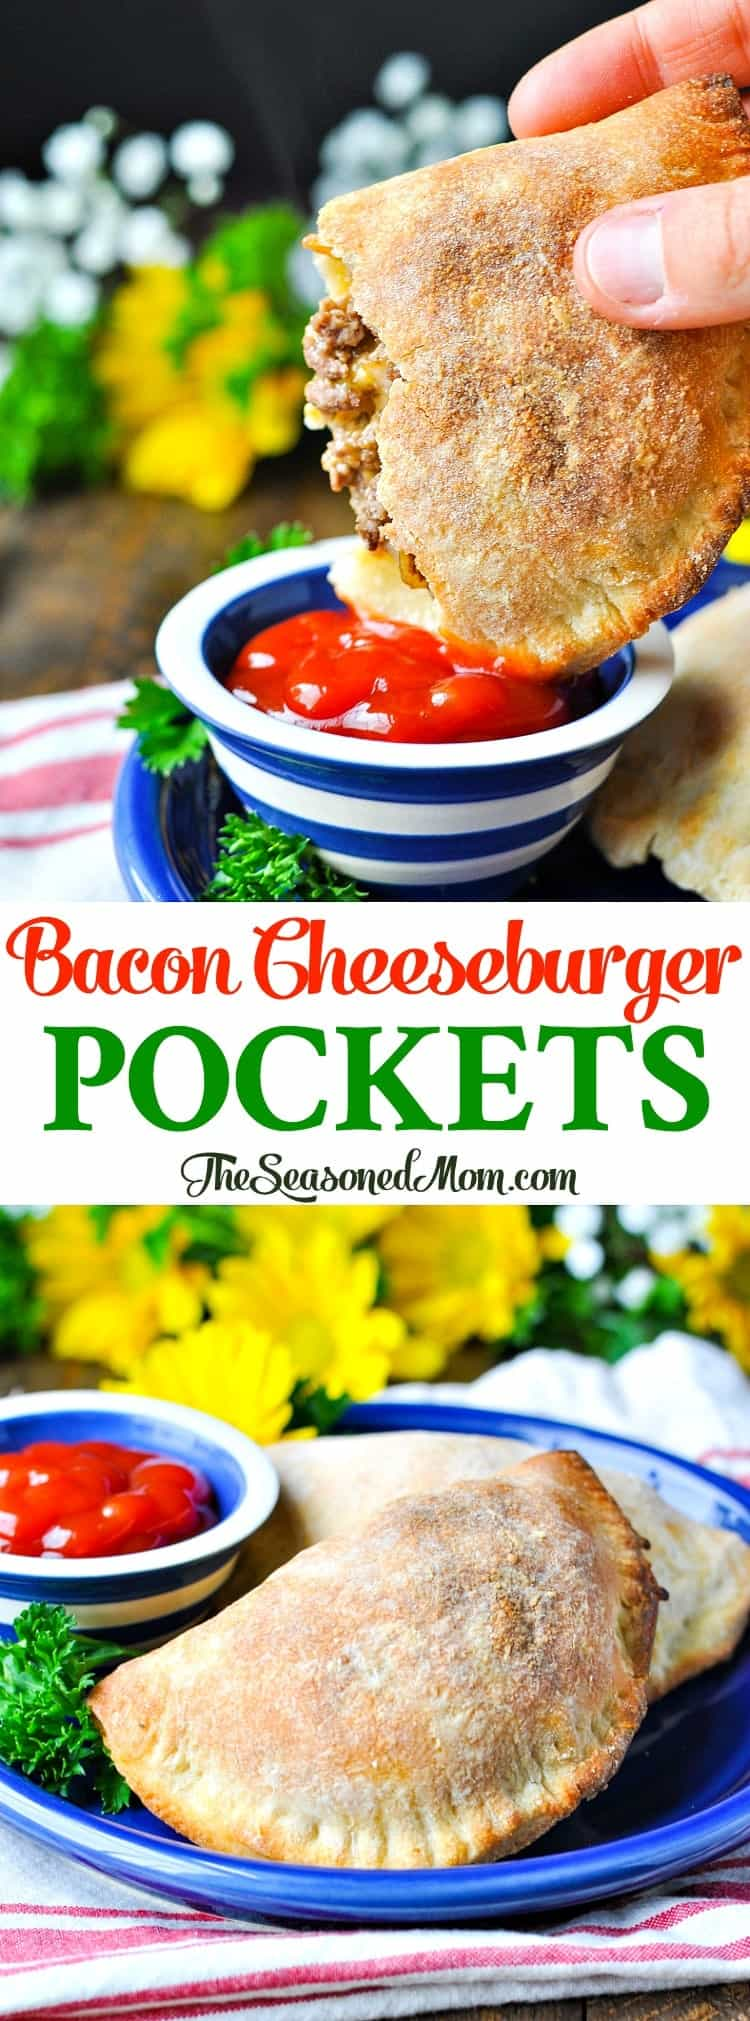 Bacon Cheeseburger Pockets! Easy Dinner Recipes | Healthy Dinner Recipes | Dinner Ideas | Dinner Recipes Healthy | Ground Beef Recipes | Freezer Meals | Freezer Recipes | Make Ahead Meals | Prep Ahead | Meal Prep